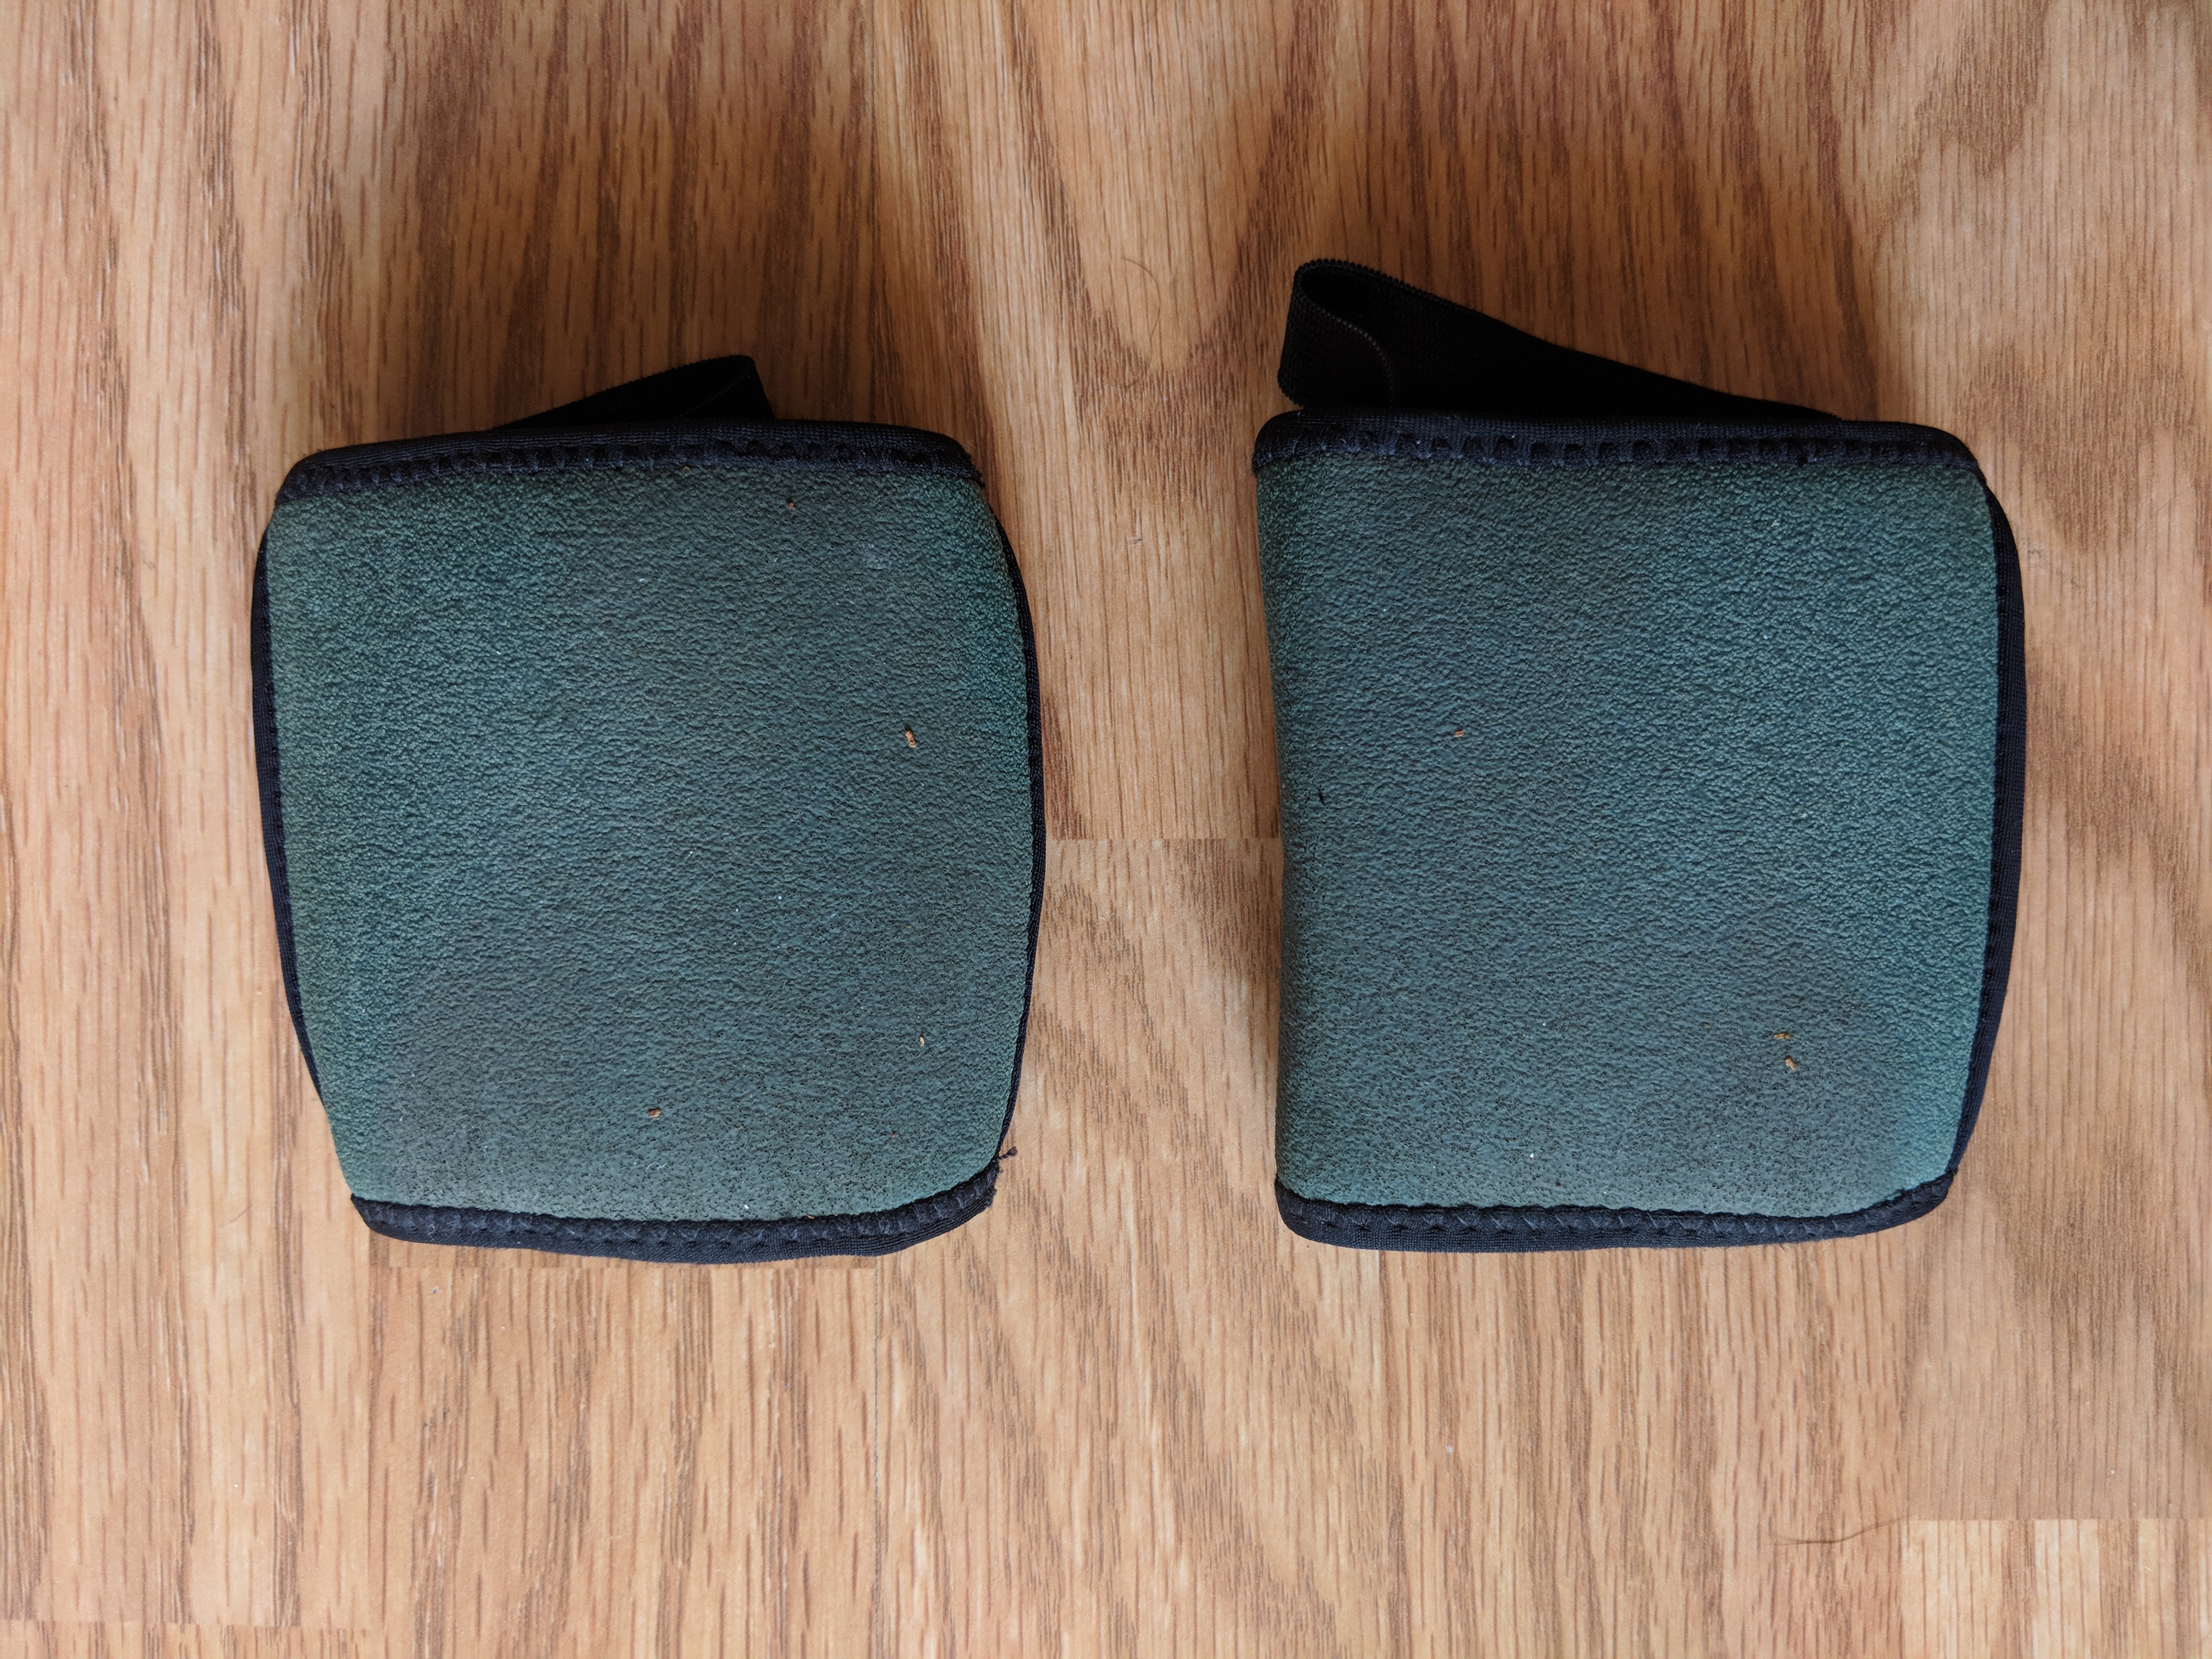 Yoga Paws Review - Wearable Foot Pads (bottom)